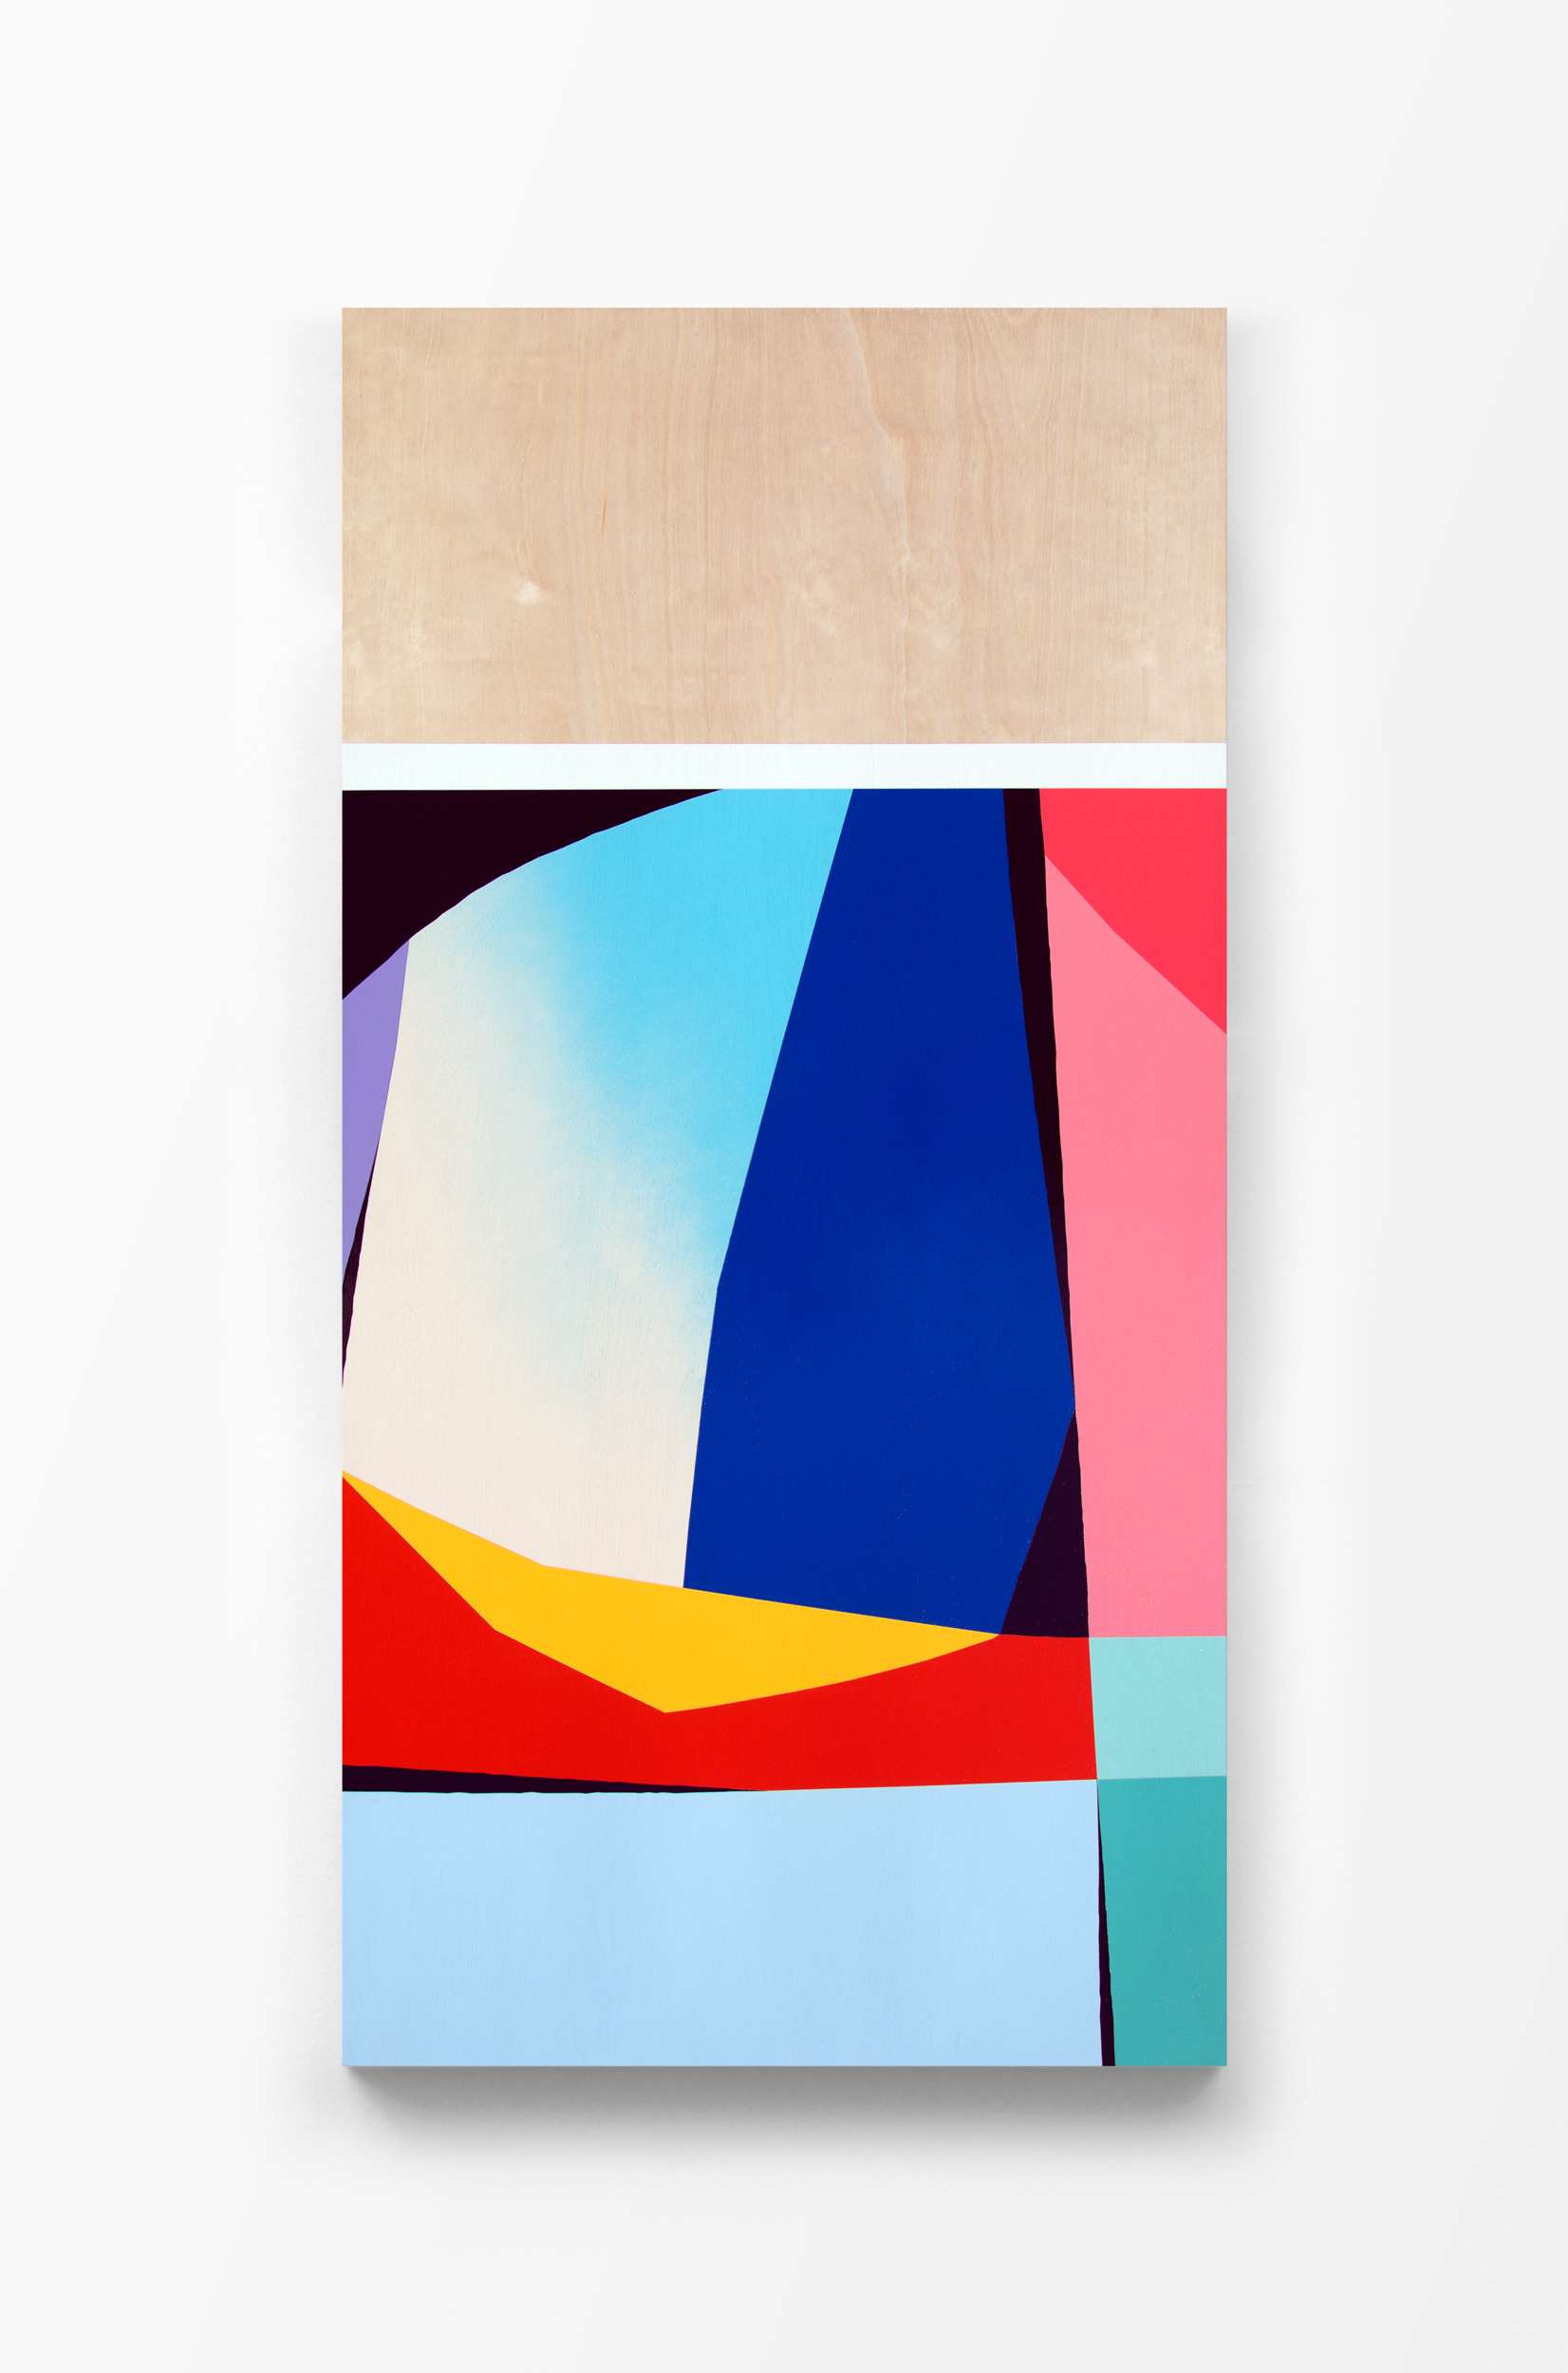 Untitled, 2017 Spray paint and polyurethane on birch panel 24 x 48 x 1.5 inches